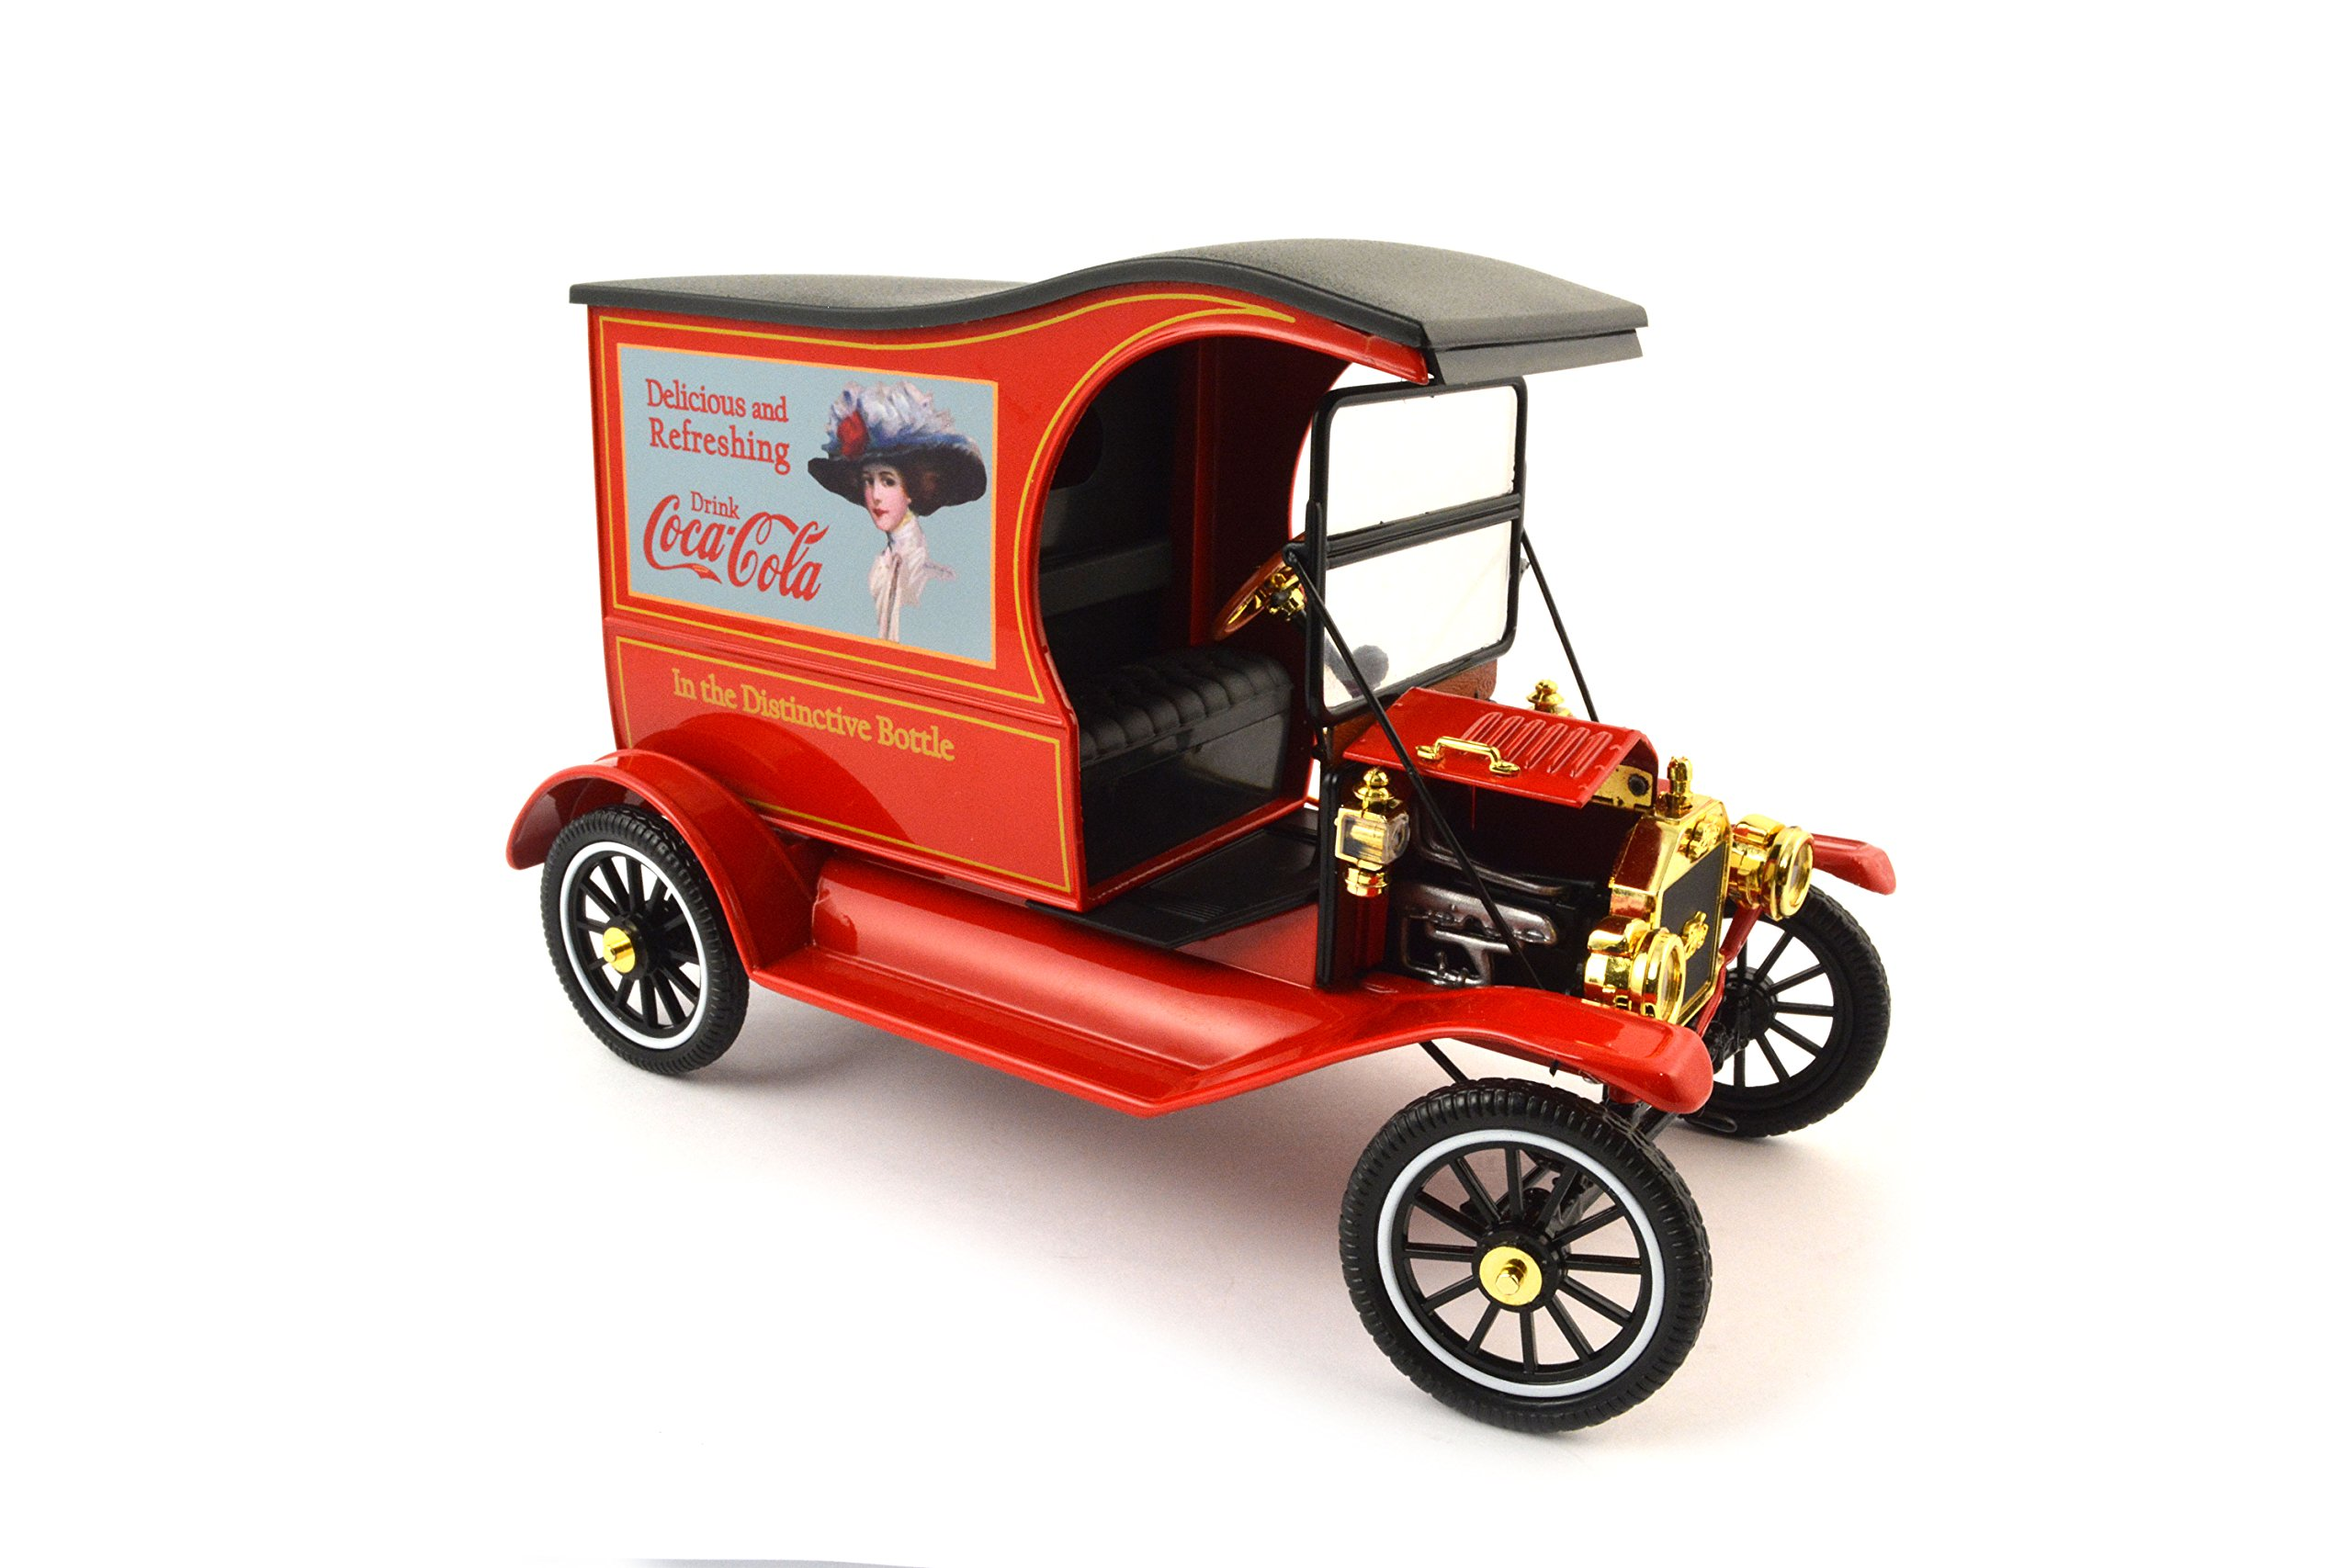 Motor city classics 1917 Ford Model T 'Drink Delicious' Vehicle (1:18 Scale)